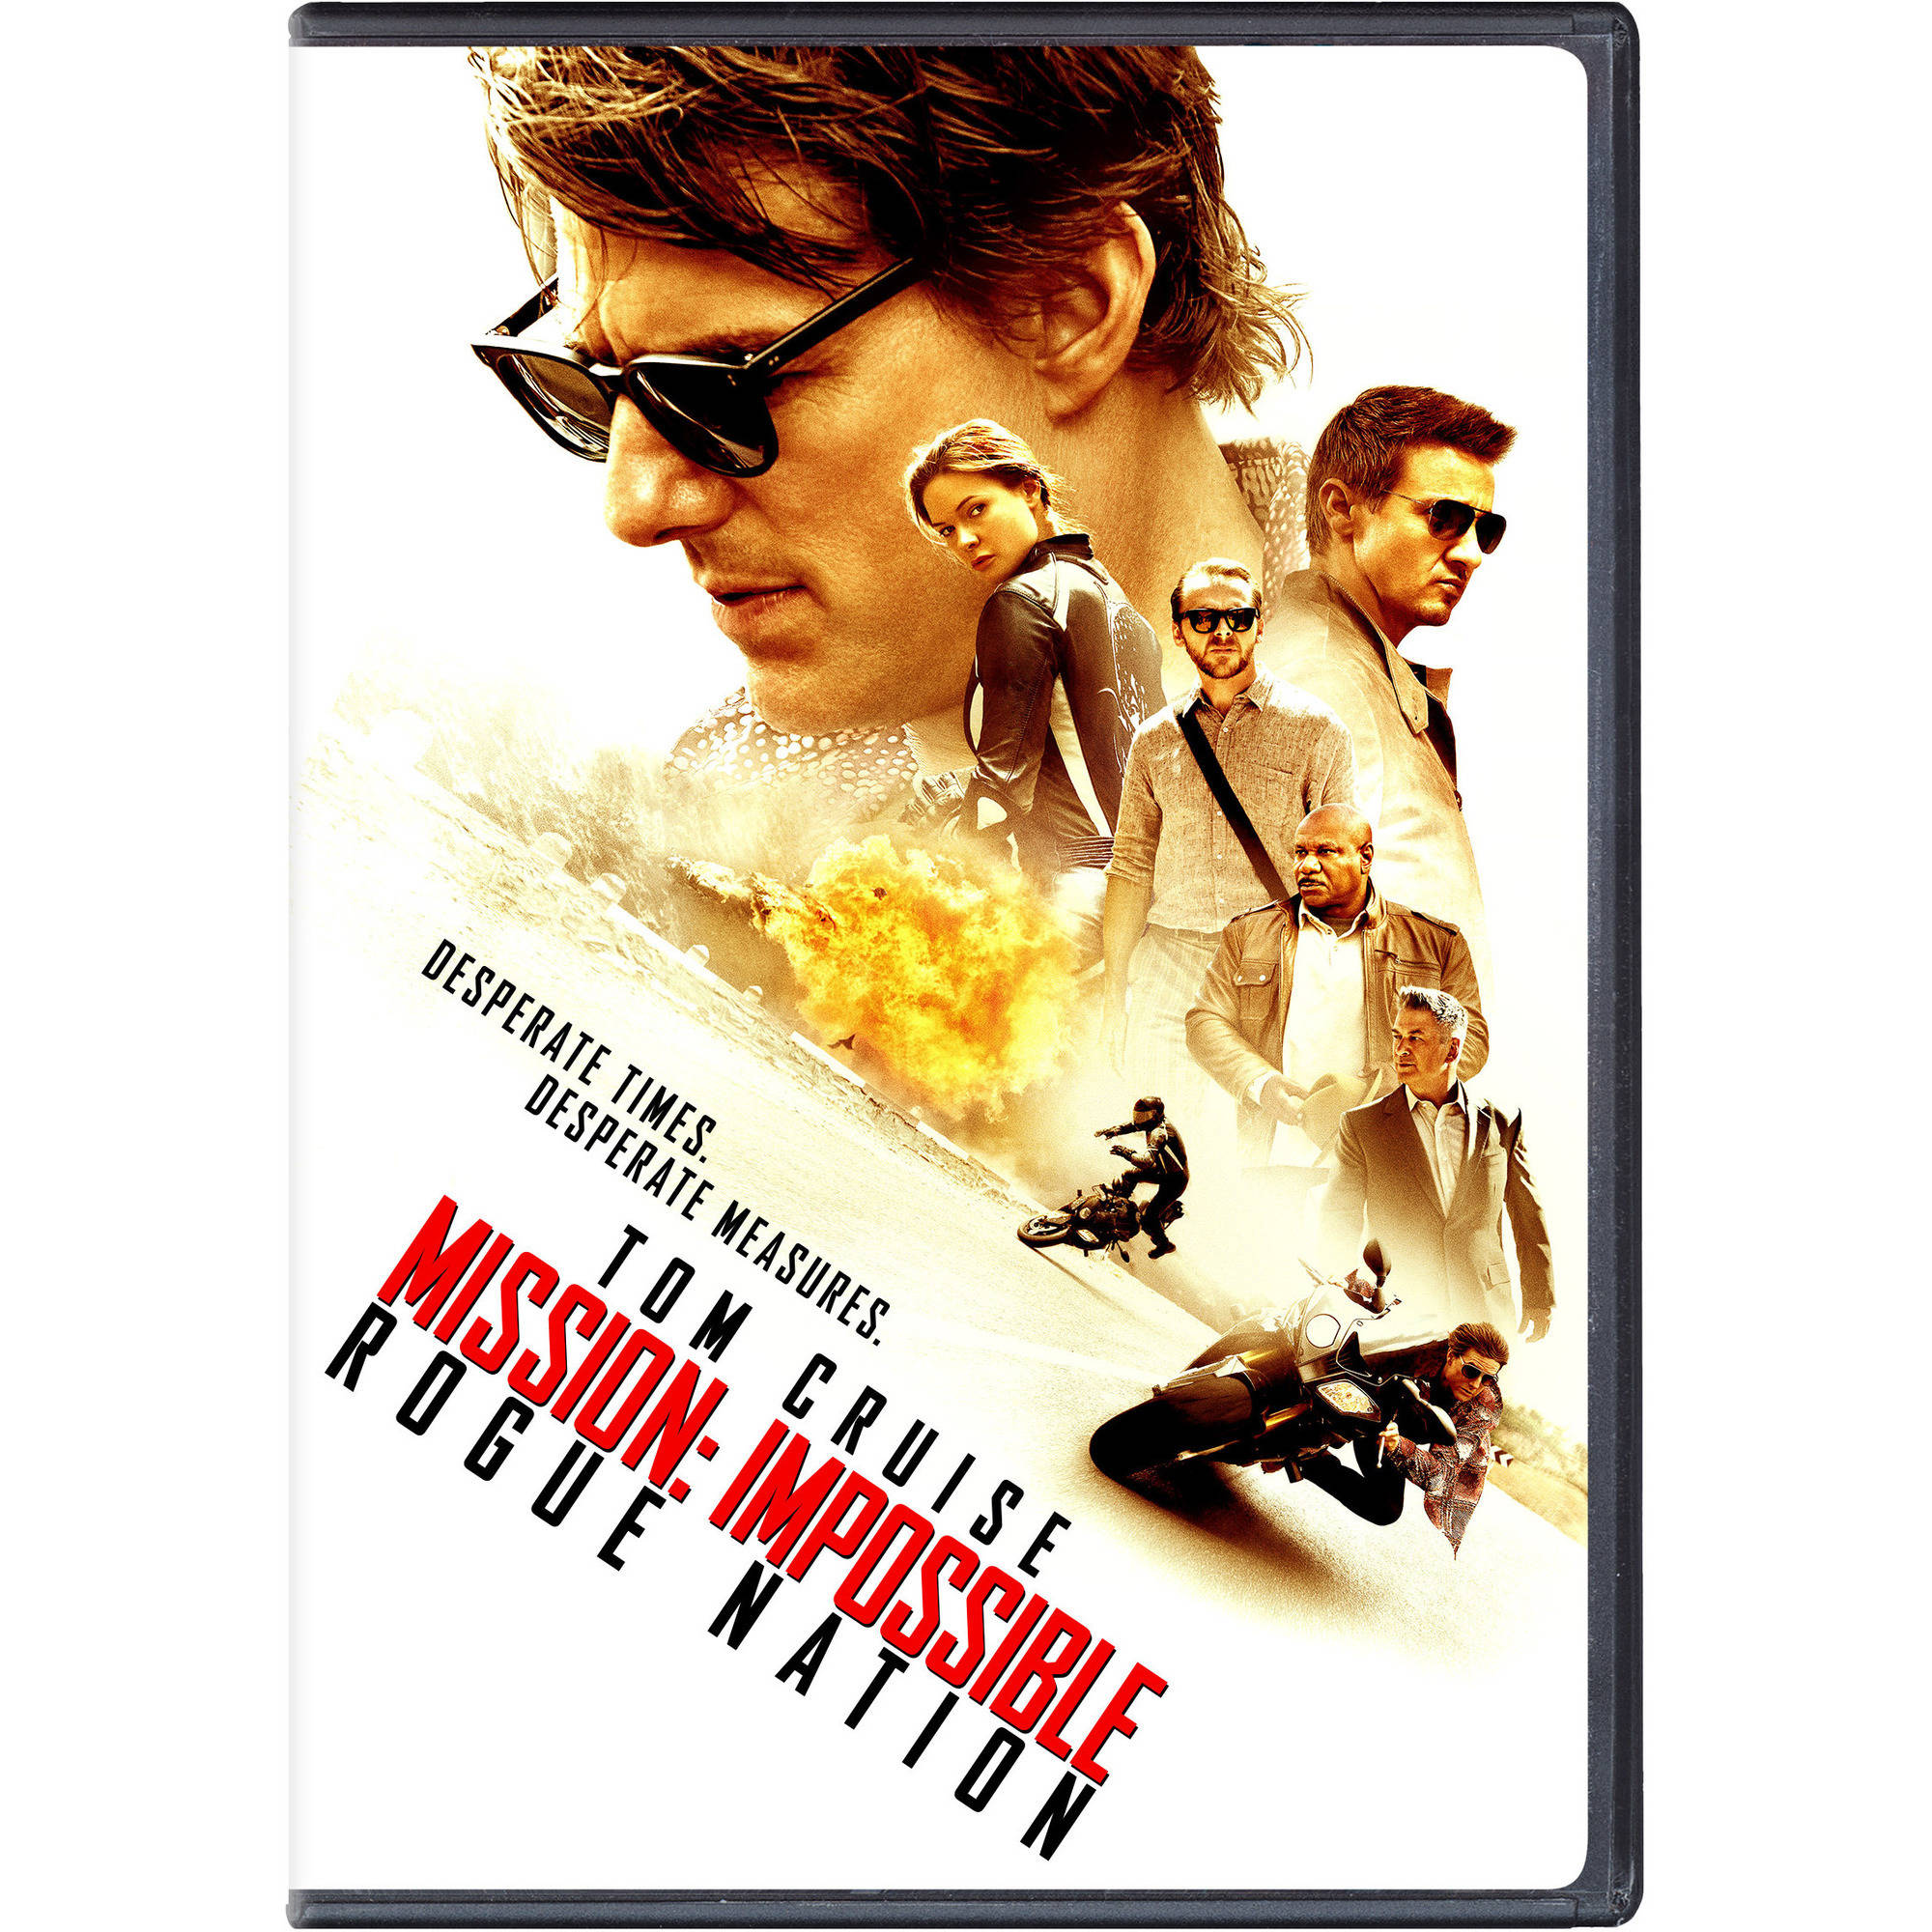 Mission: Impossible - Rogue Nation (DVD   Digital Copy) (With INSTAWATCH) (Walmart Exclusive))